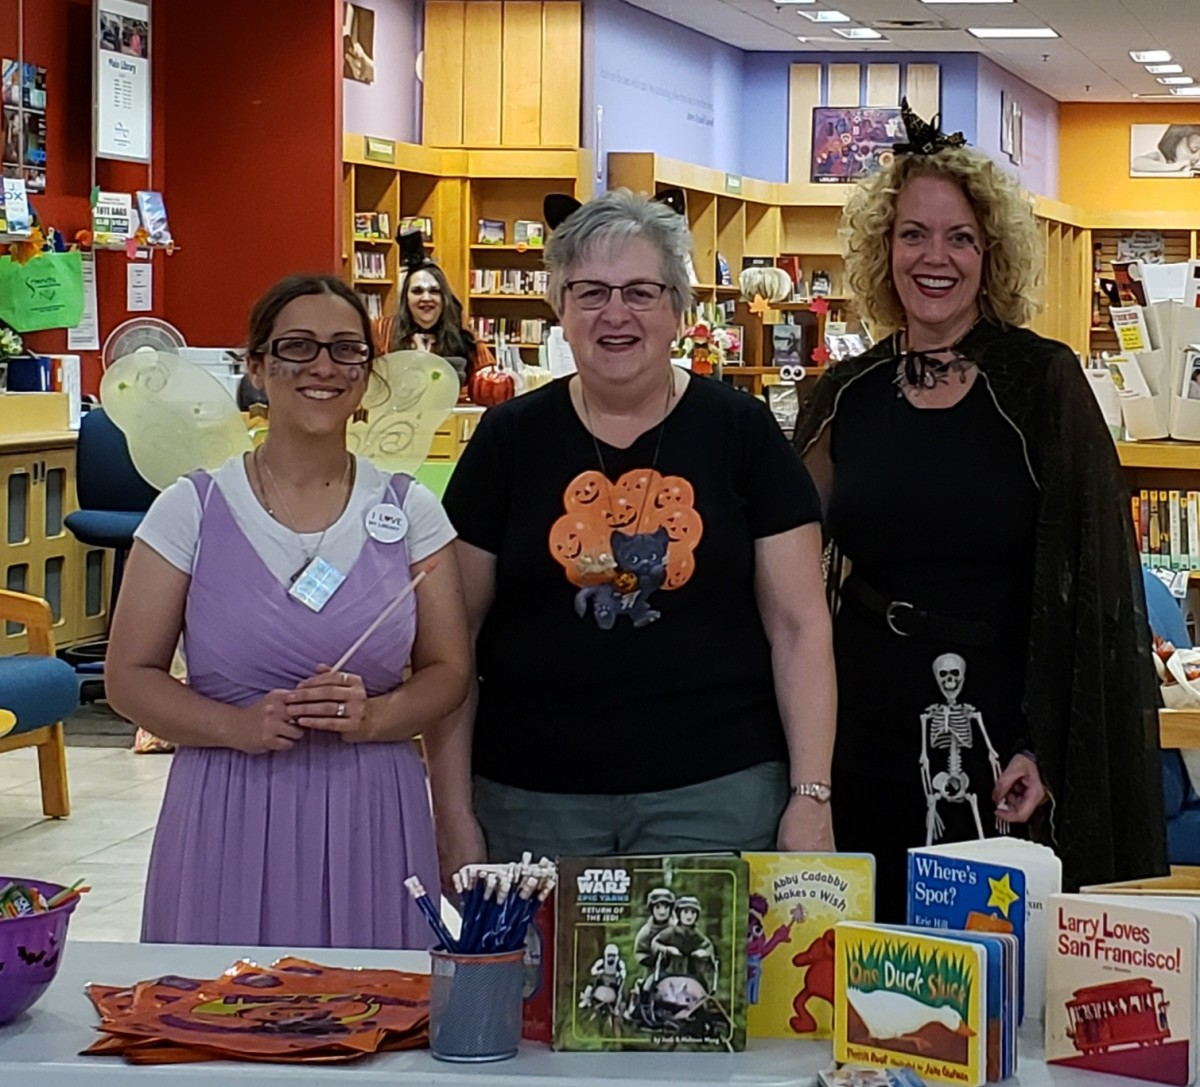 Library staff pose for a photo in their costumes.